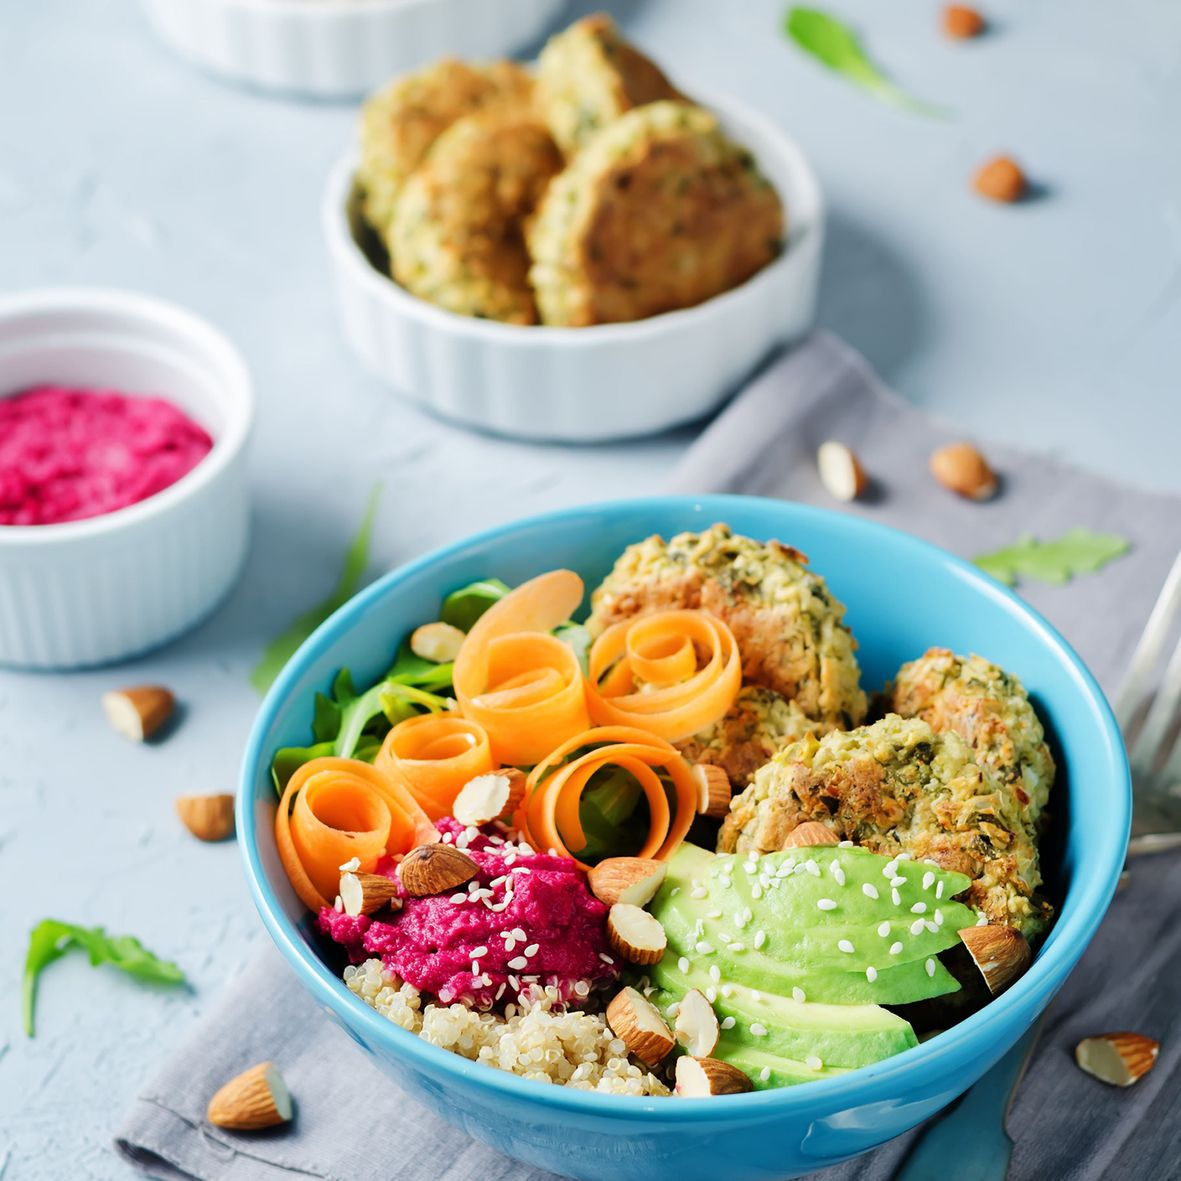 Website_Tile_-_Quinoa_and_Falafel_Bowls.jpg